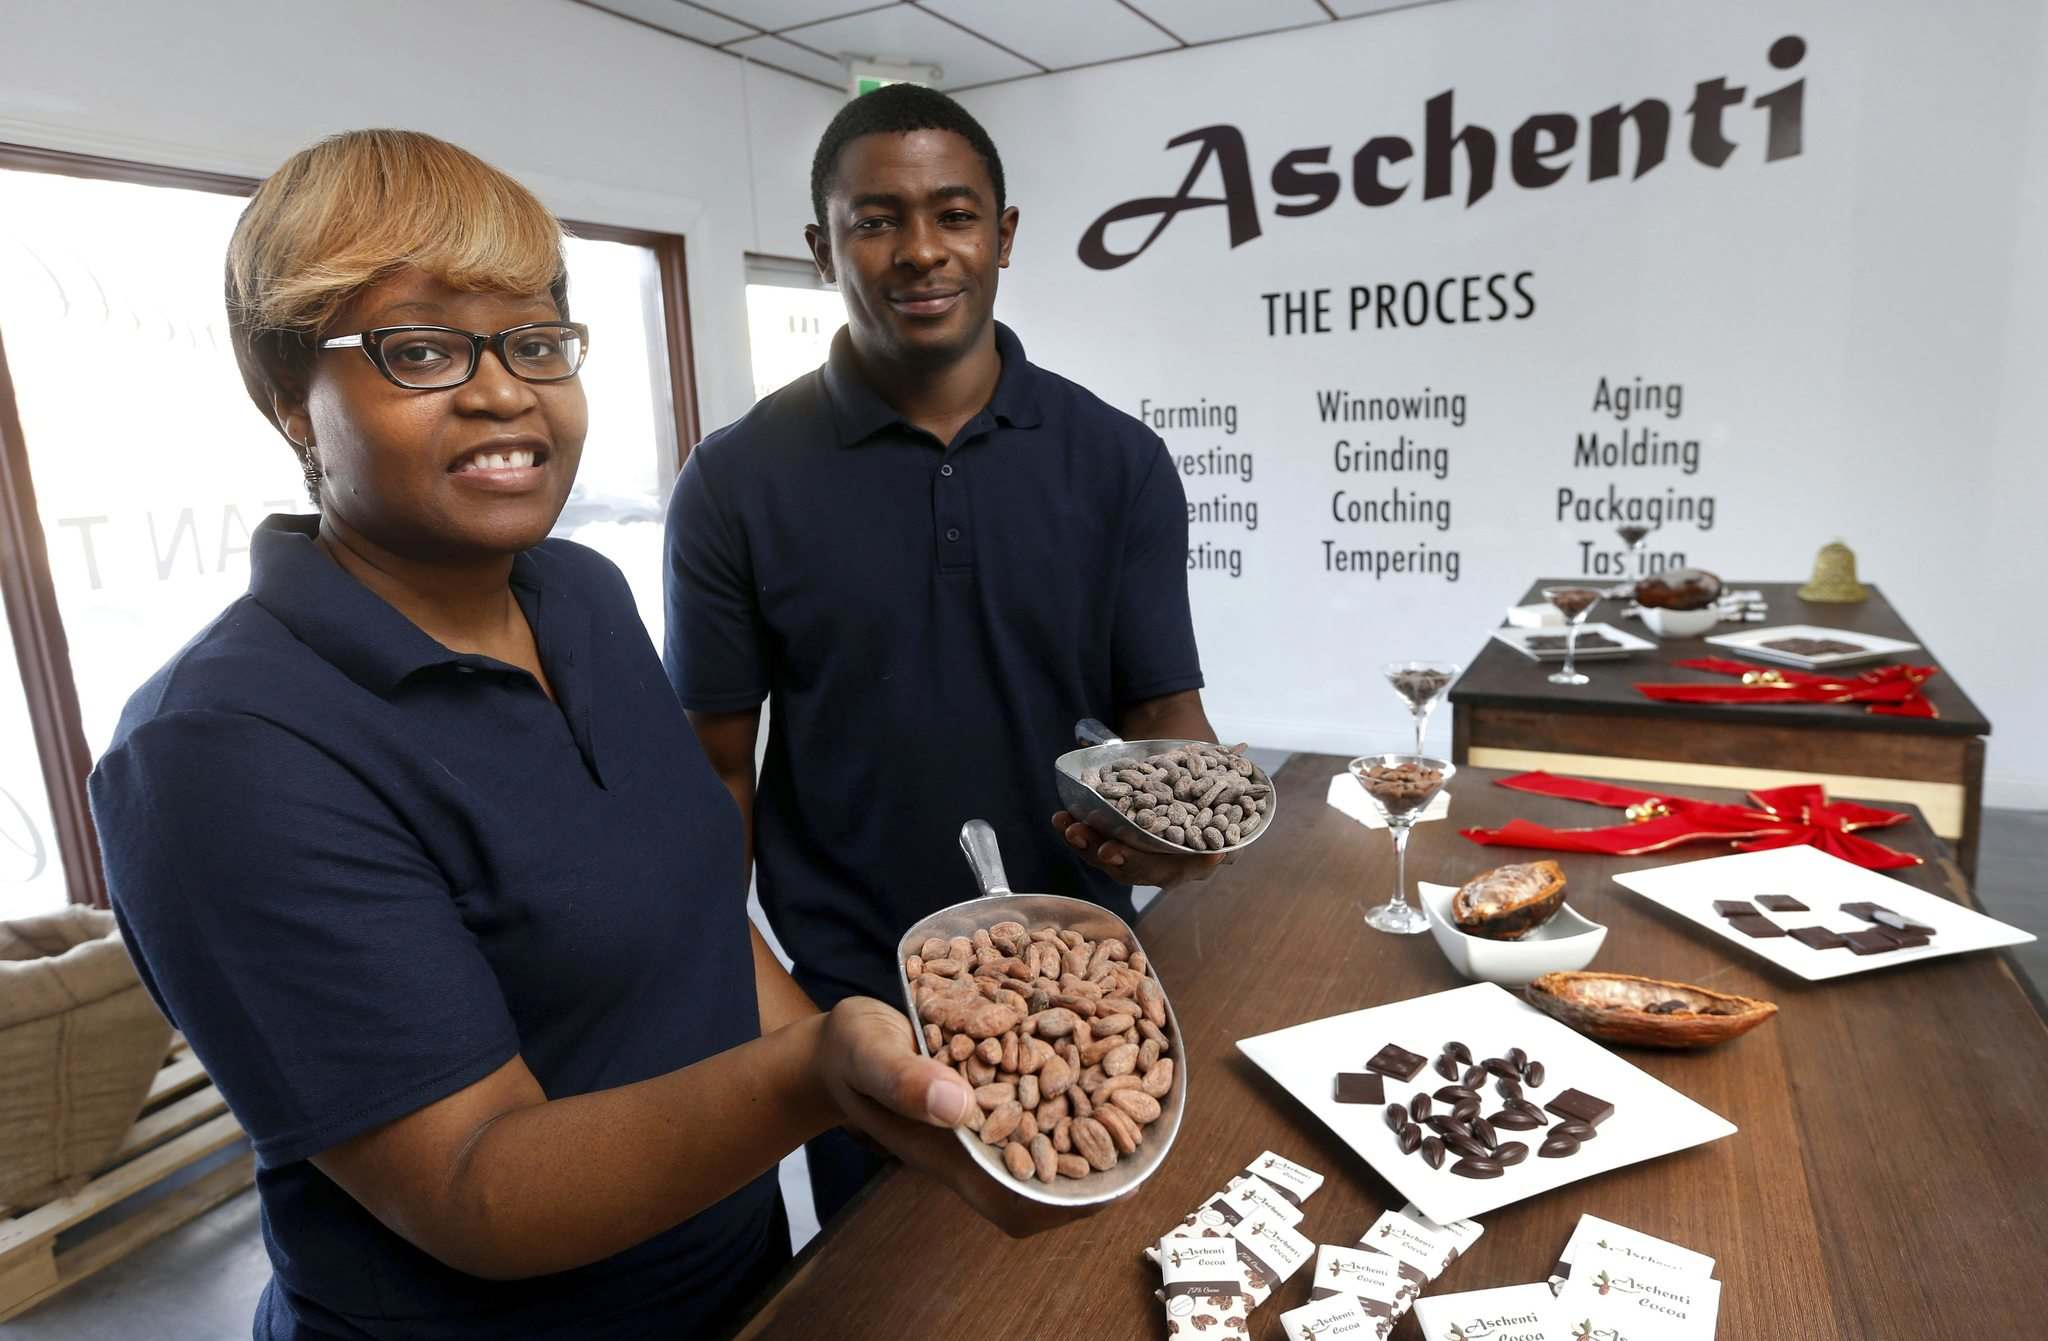 WAYNE GLOWACKI / WINNIPEG FREE PRESS</p><p>Aschenti Cocoa owners Christelle (left) and Christian Mekoh.</p></p>